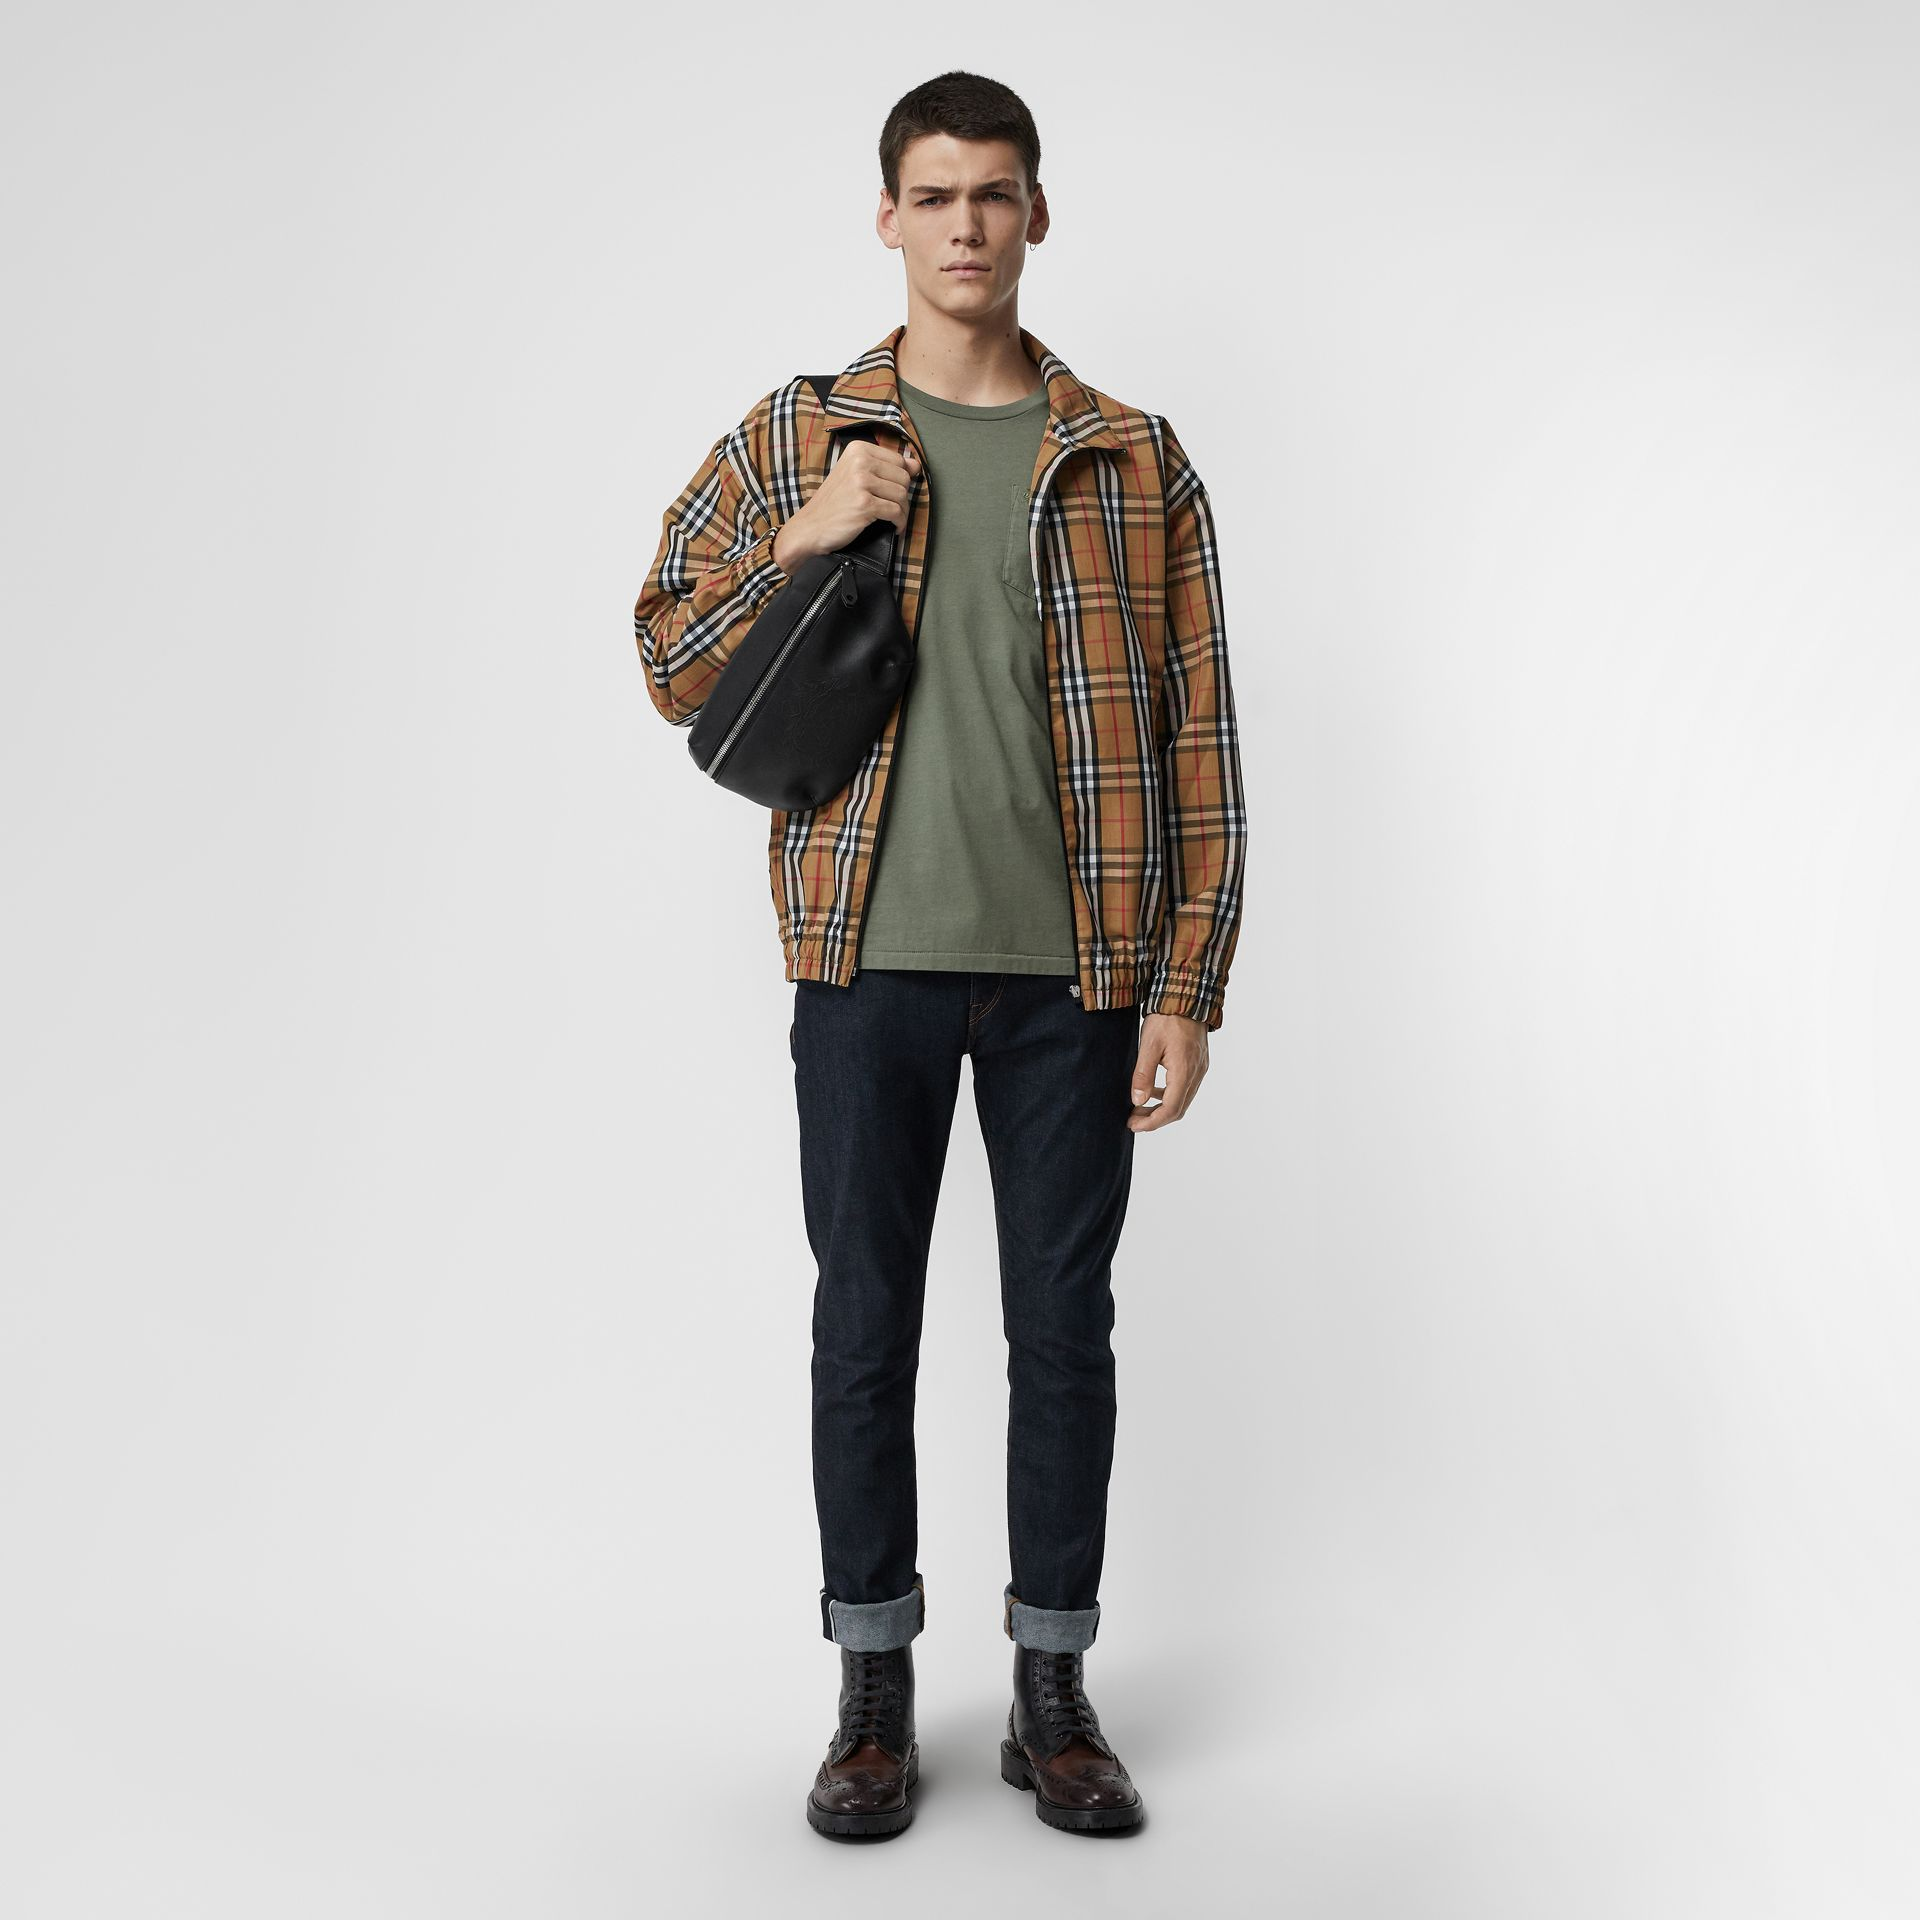 Cotton T-shirt in Clay Green - Men | Burberry - gallery image 4